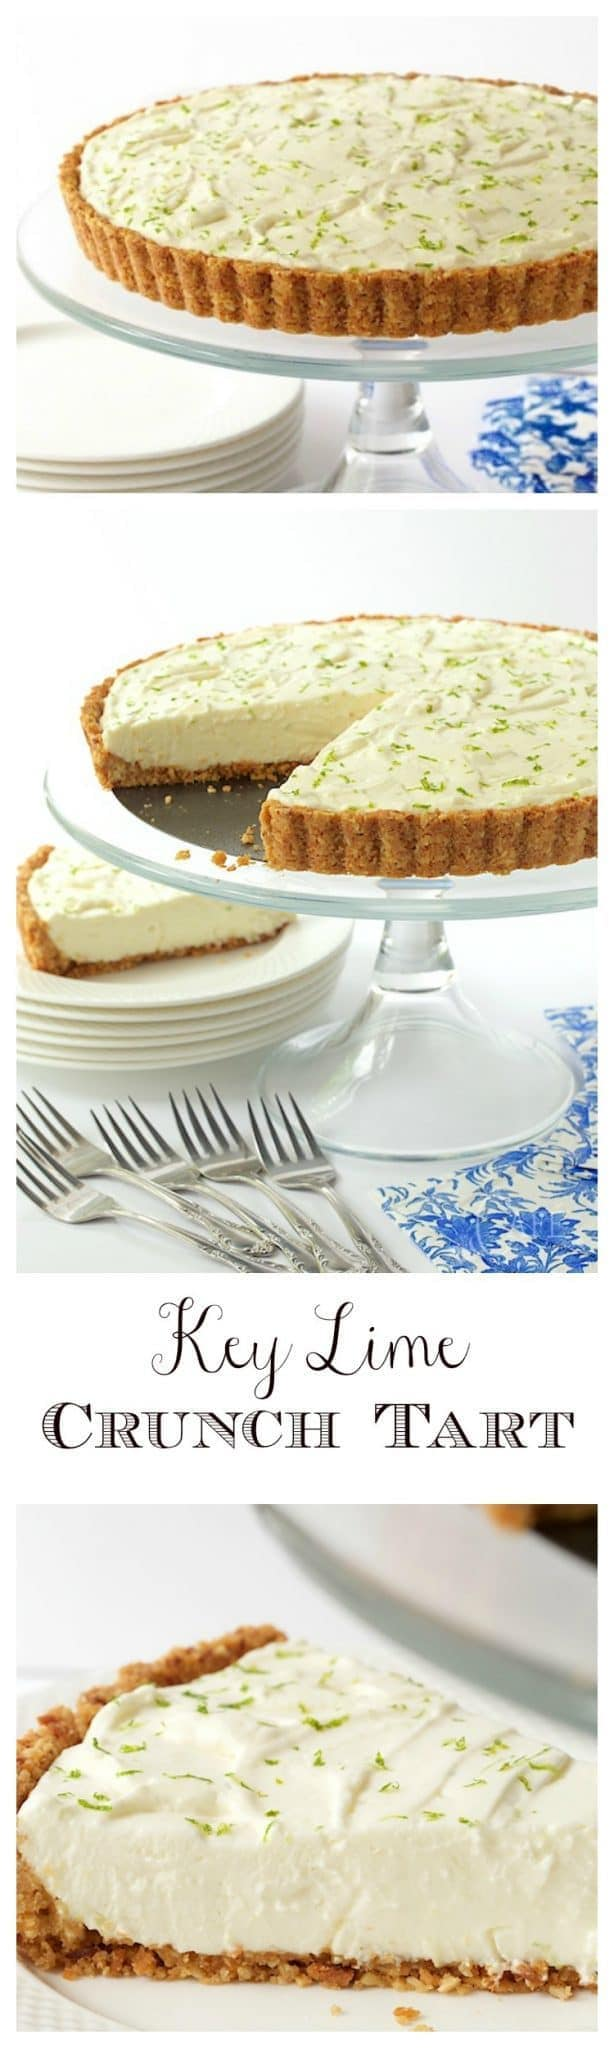 With a crunchy coconut-almond shortbread crust and a creamy, light, key lime filling, this easy, make-ahead dessert is ALWAYS a hit!